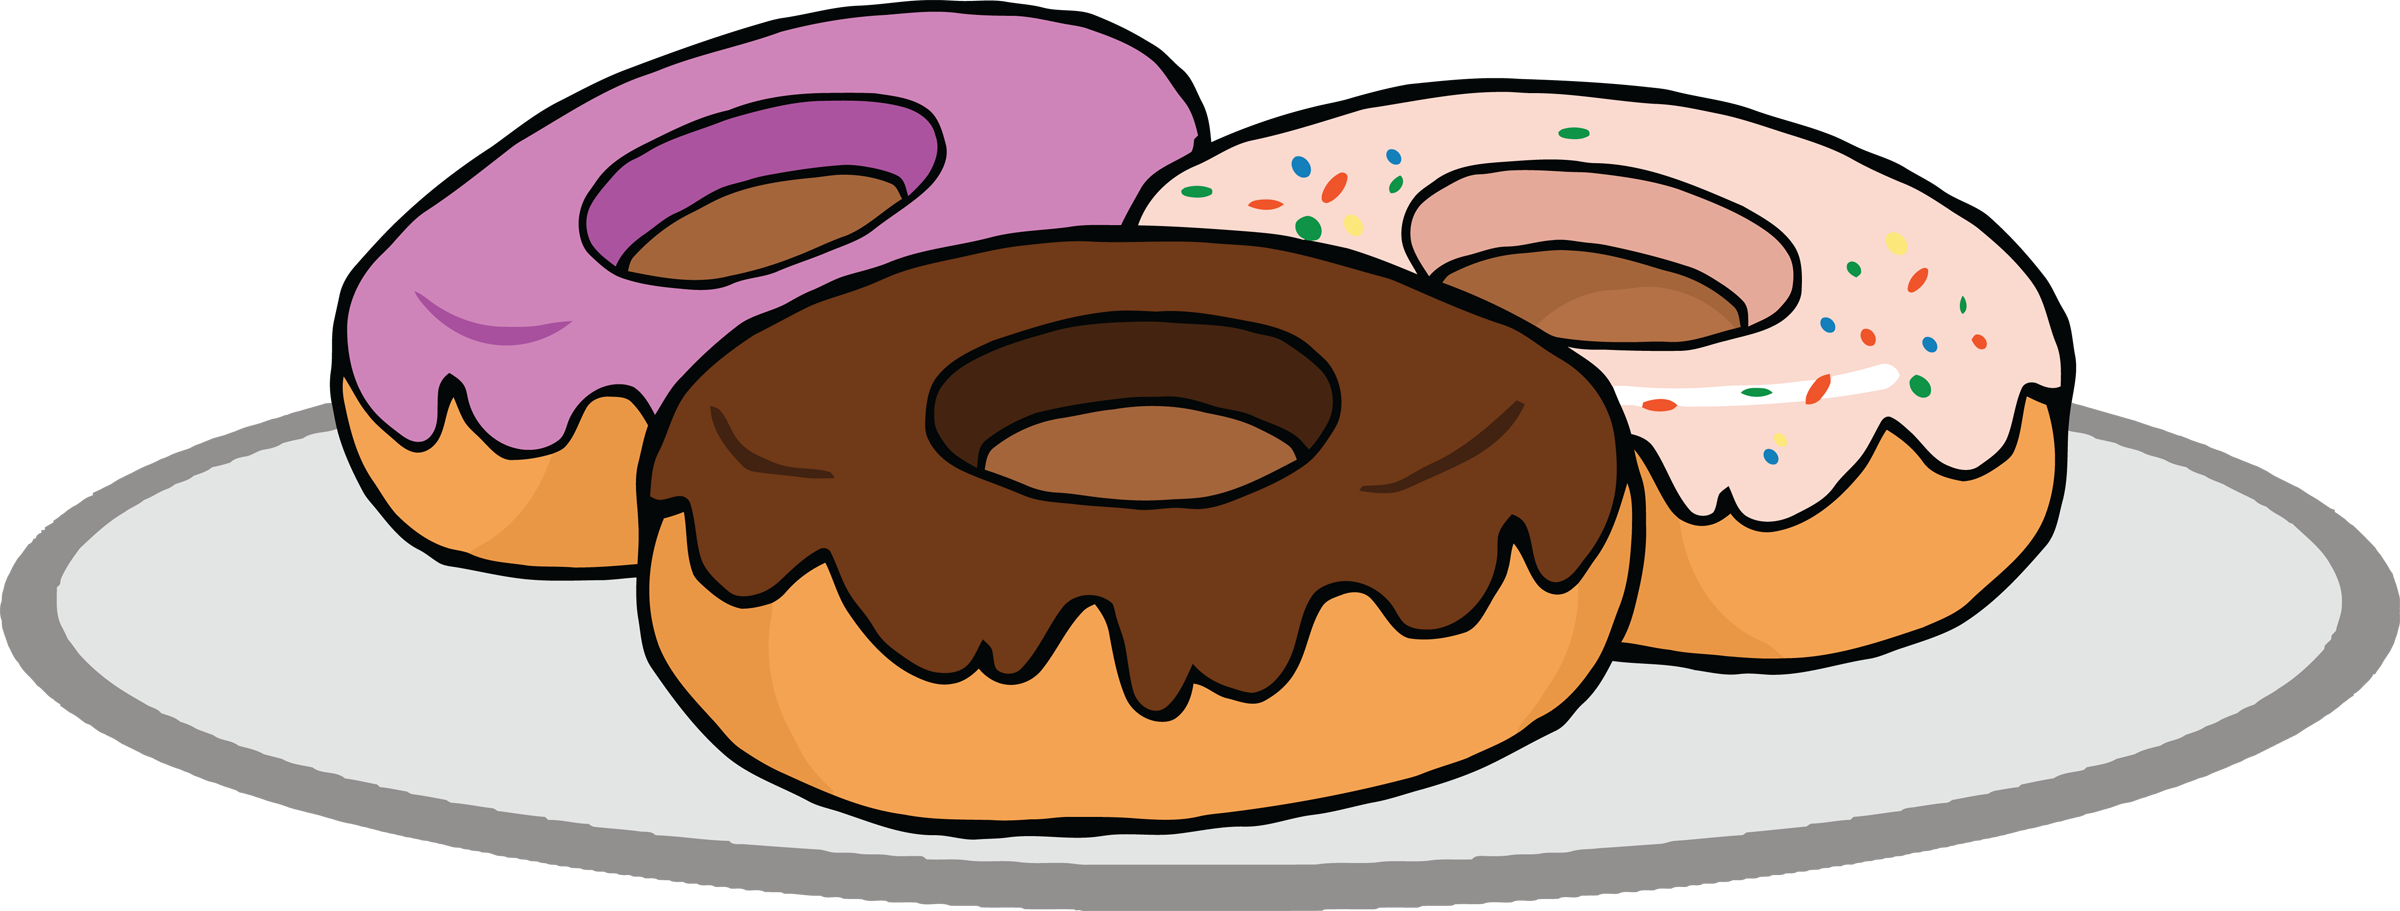 donuts vector cartoon